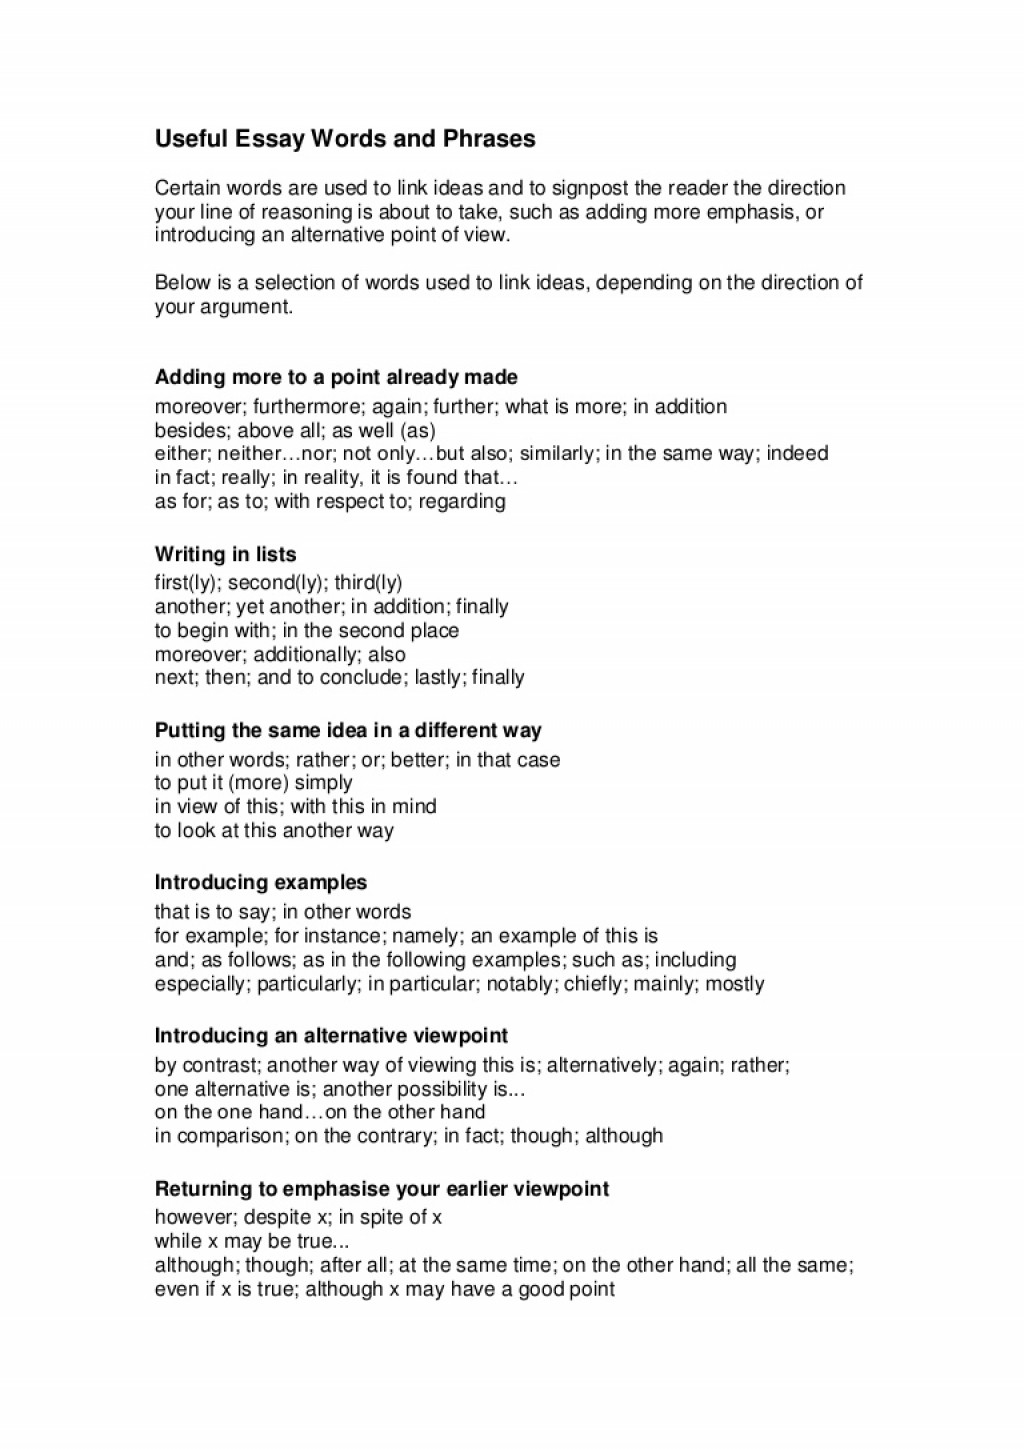 016 Good Topics For Discursive Essay Writtenassignments2usefulessaywordsandphrases Phpapp02 Thumbnail Wonderful A Interesting Higher Persuasive Large